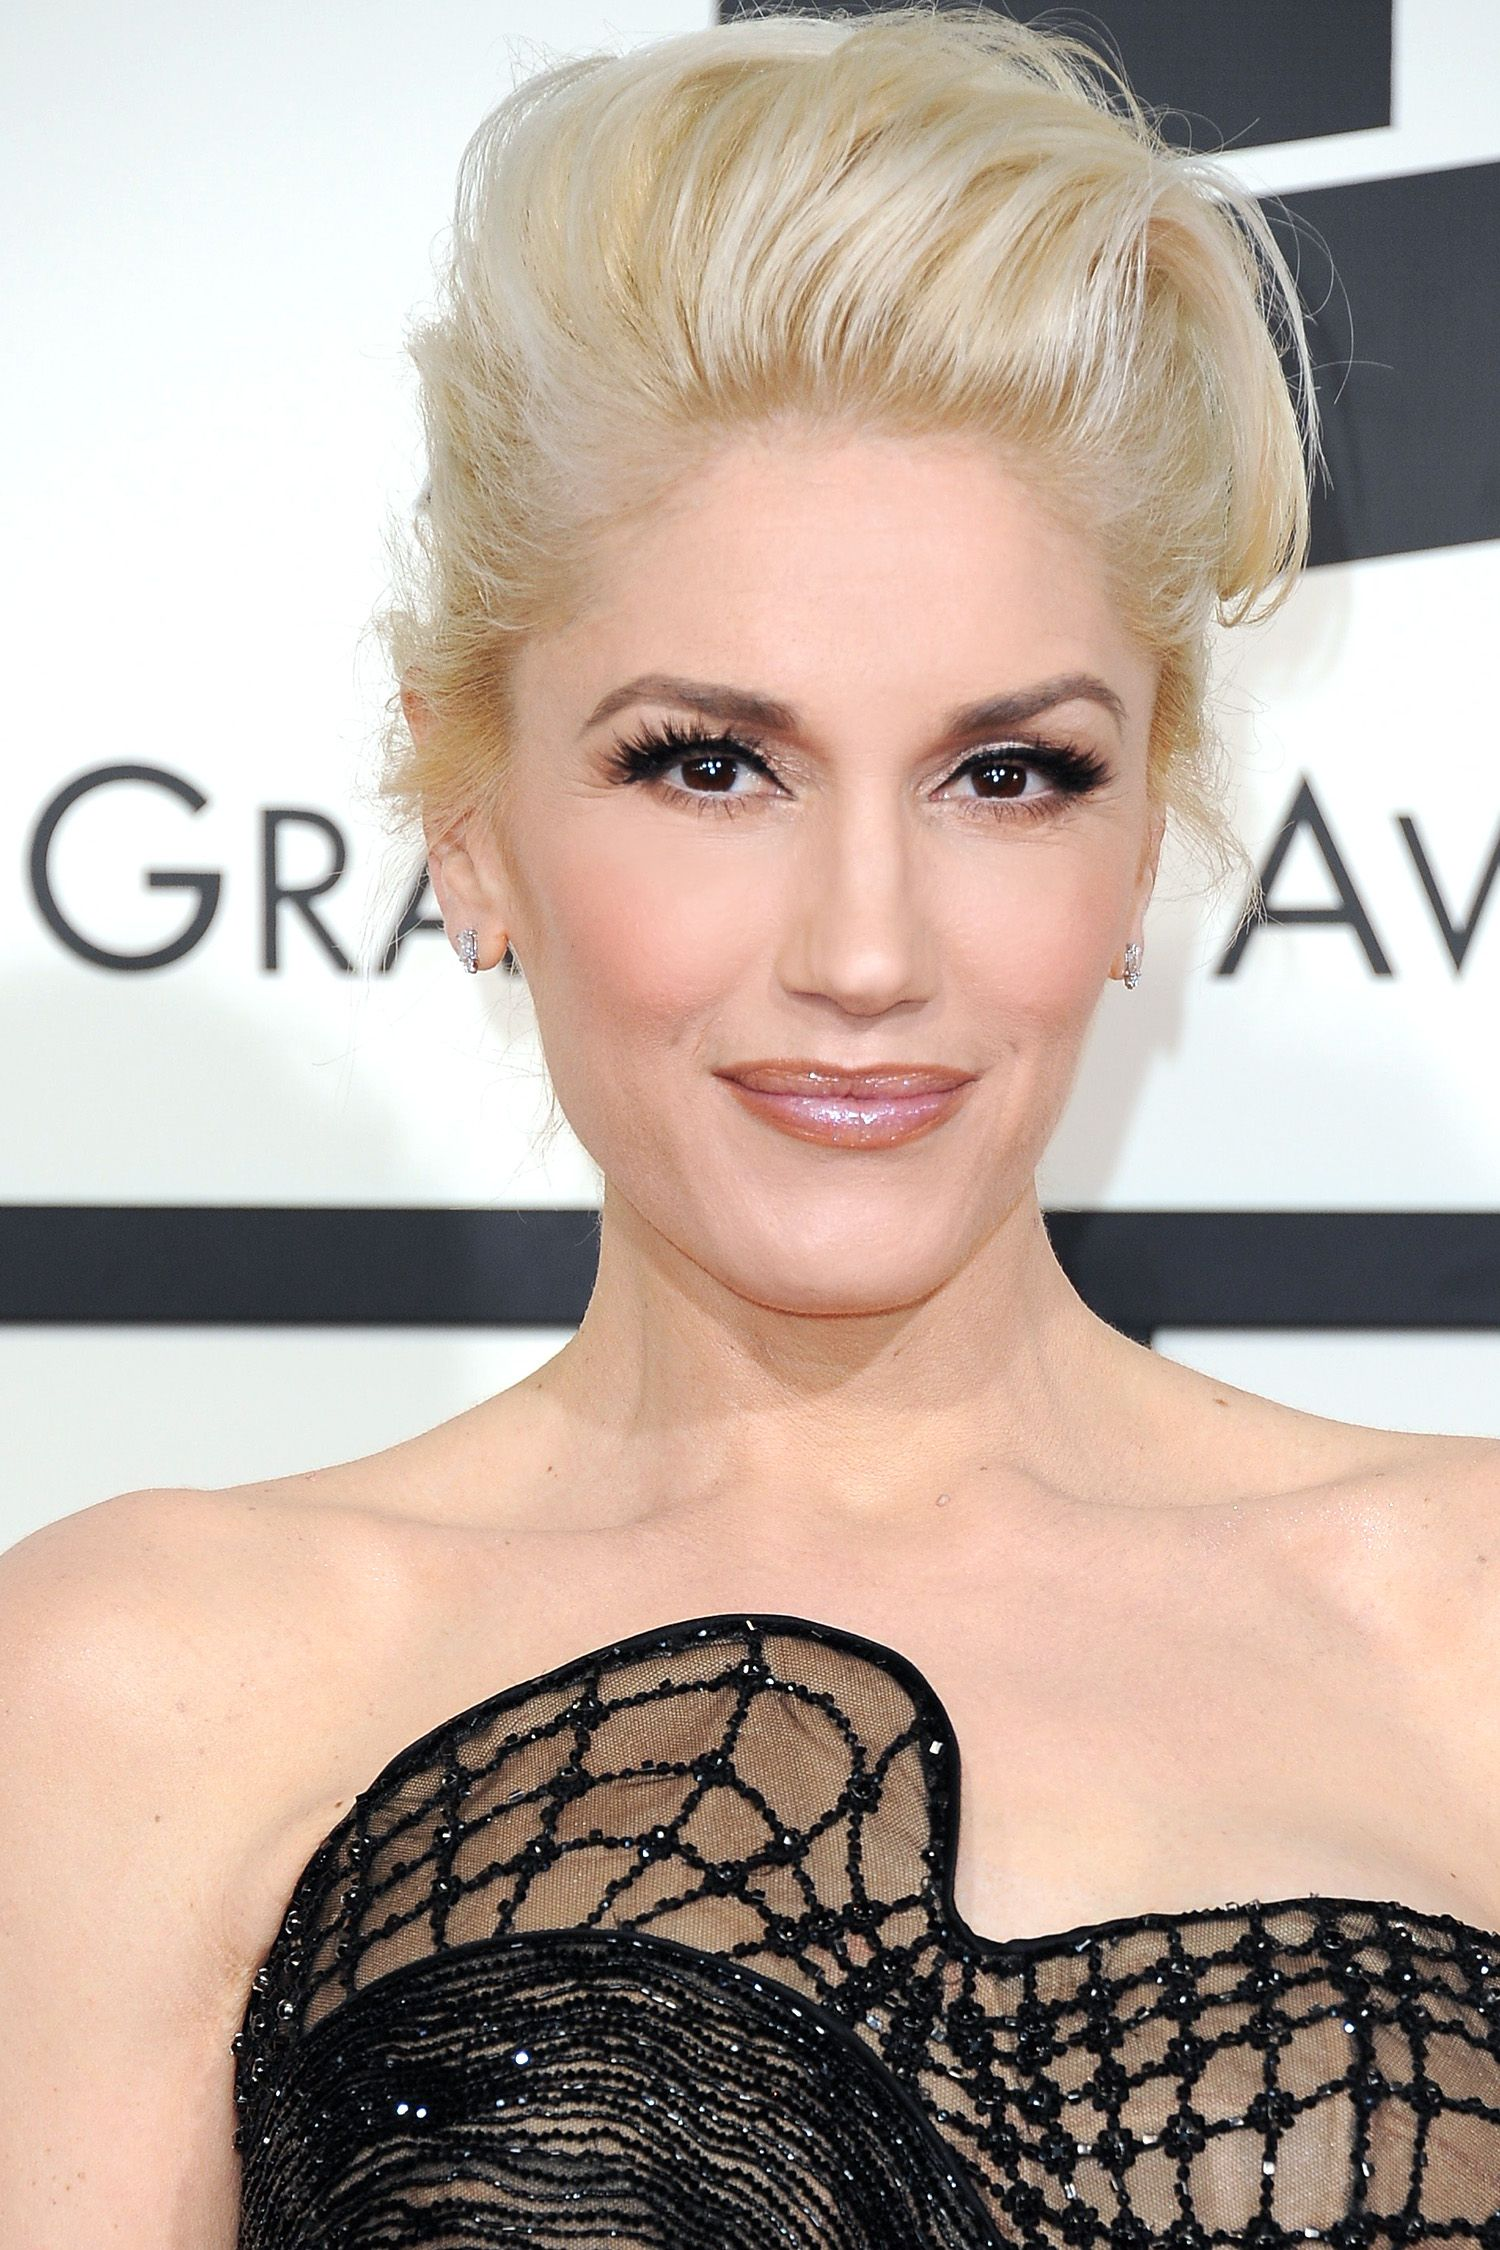 Gwen Stefani arrives on the red carpet for the 57th Annual Grammy Awards in Los Angeles February 8, 2015. AFP PHOTO/VALERIE MACON        (Photo credit should read VALERIE MACON/AFP/Getty Images)